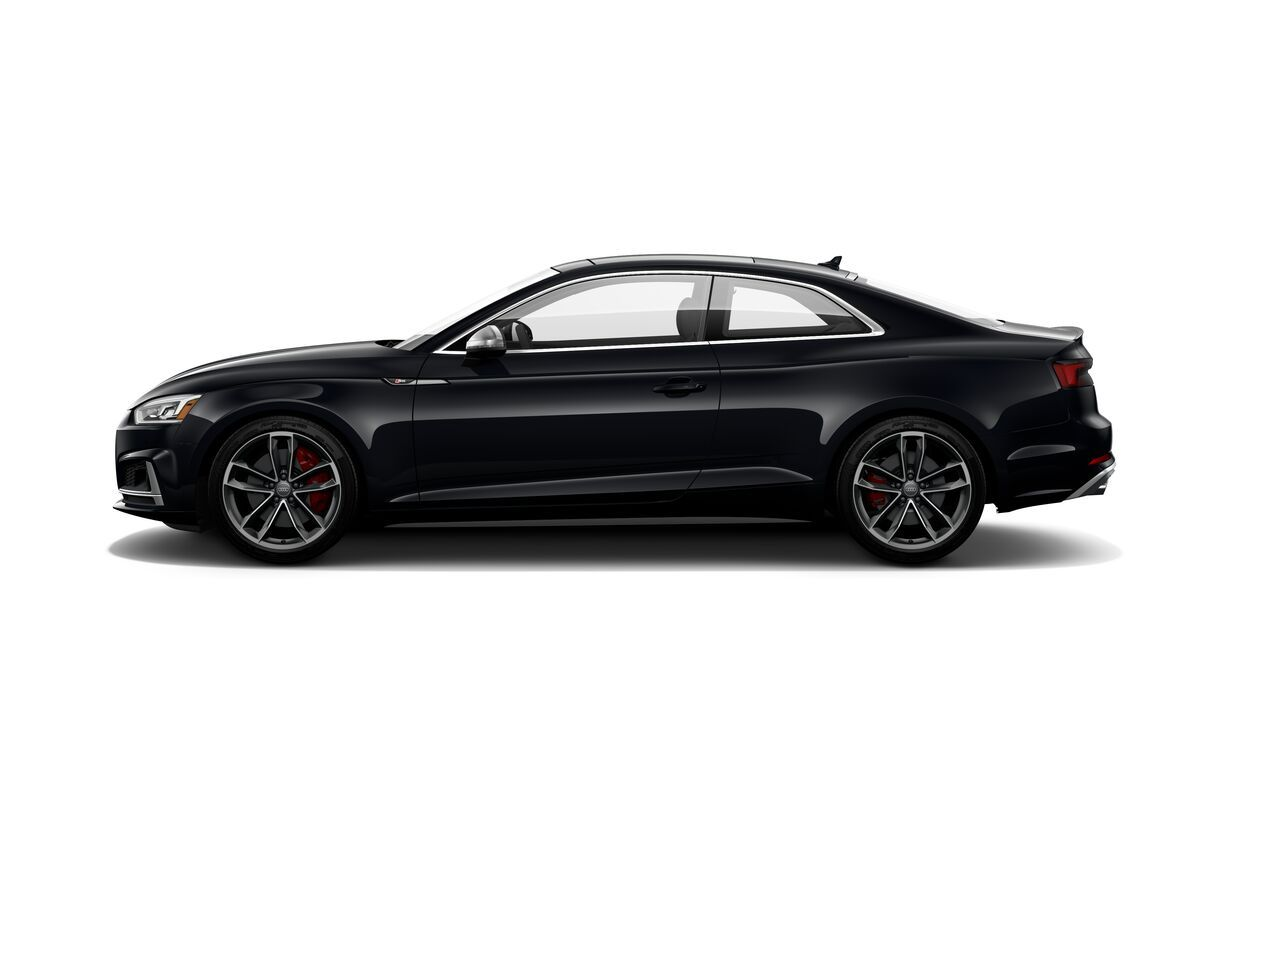 2018 Audi S5 Coupe Build Shown In Mythos Black Metallic Exterior